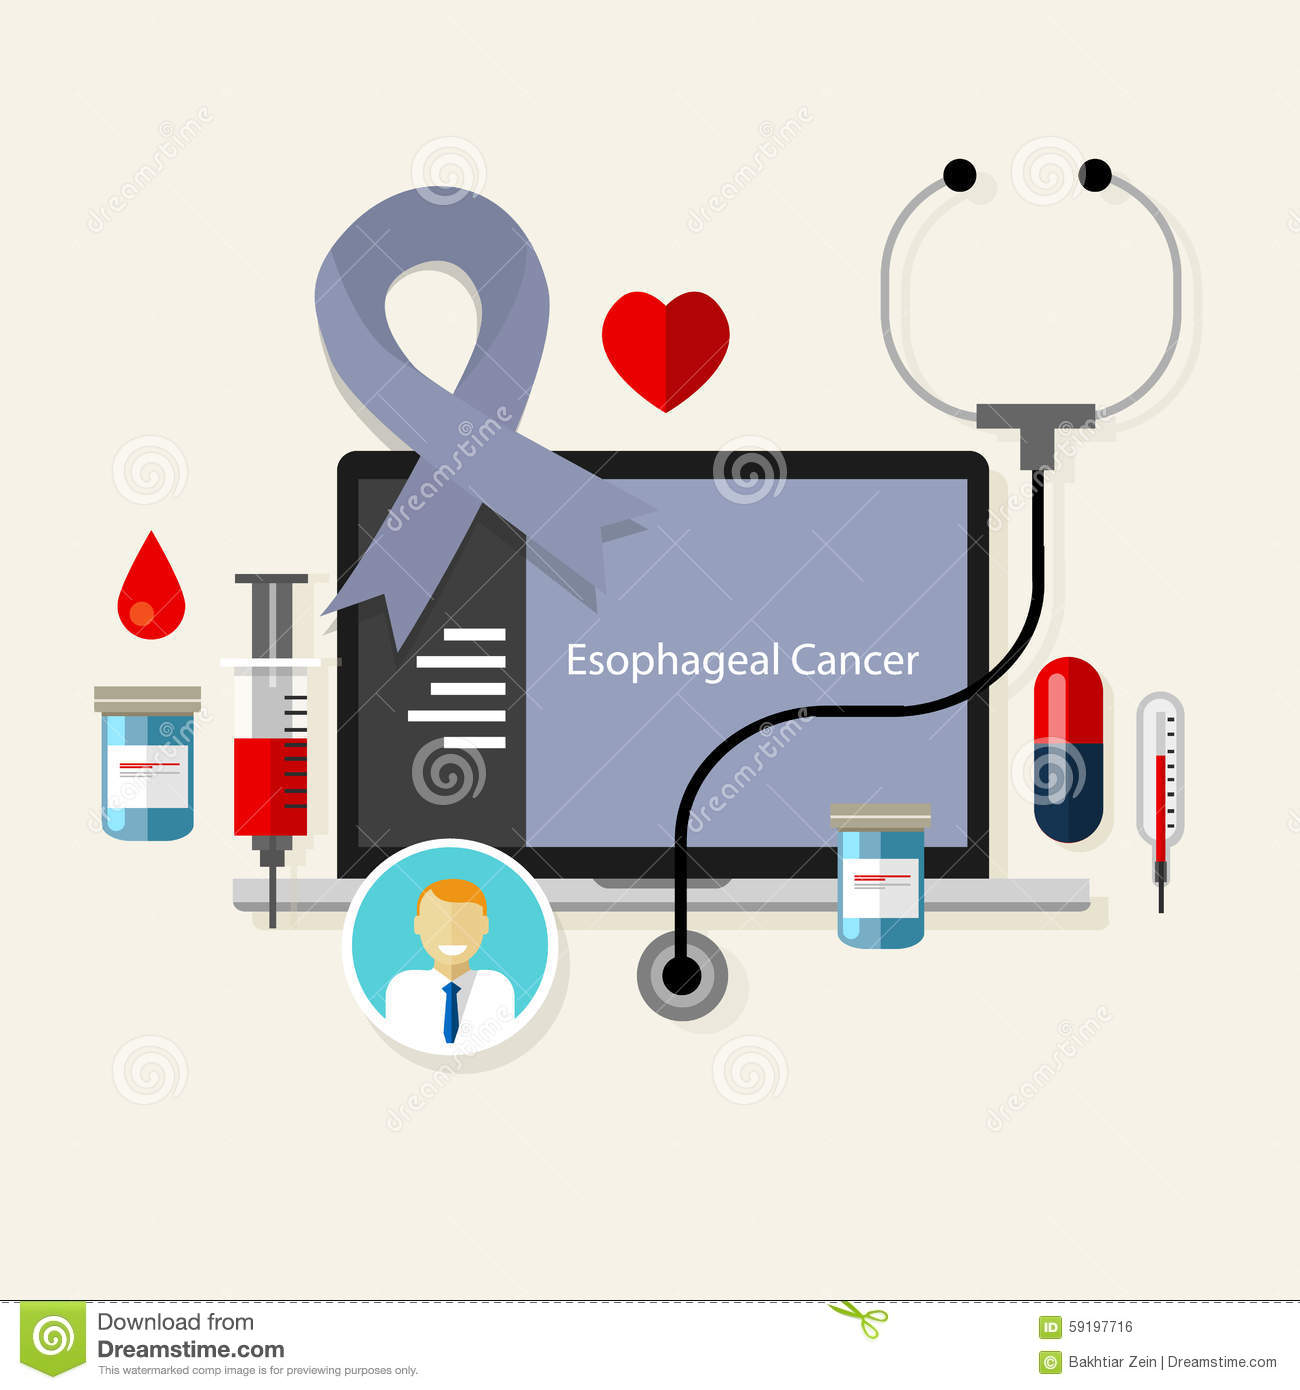 Esophageal Cancer Medical Ribbon Treatment Health Disease. Bond For Car Dealer License It Outsourcing. Paypal Swipe Card Reader Fiu Psychology Major. Morrison Insurance Agency Maples Nursing Home. Ms Counseling Psychology Nordstrom Bp Jewelry. Dixie Applied Technology College. Medical Billing Statement Template. Criminal Attorney Indianapolis. Can You Buy Stuff Online With A Debit Card